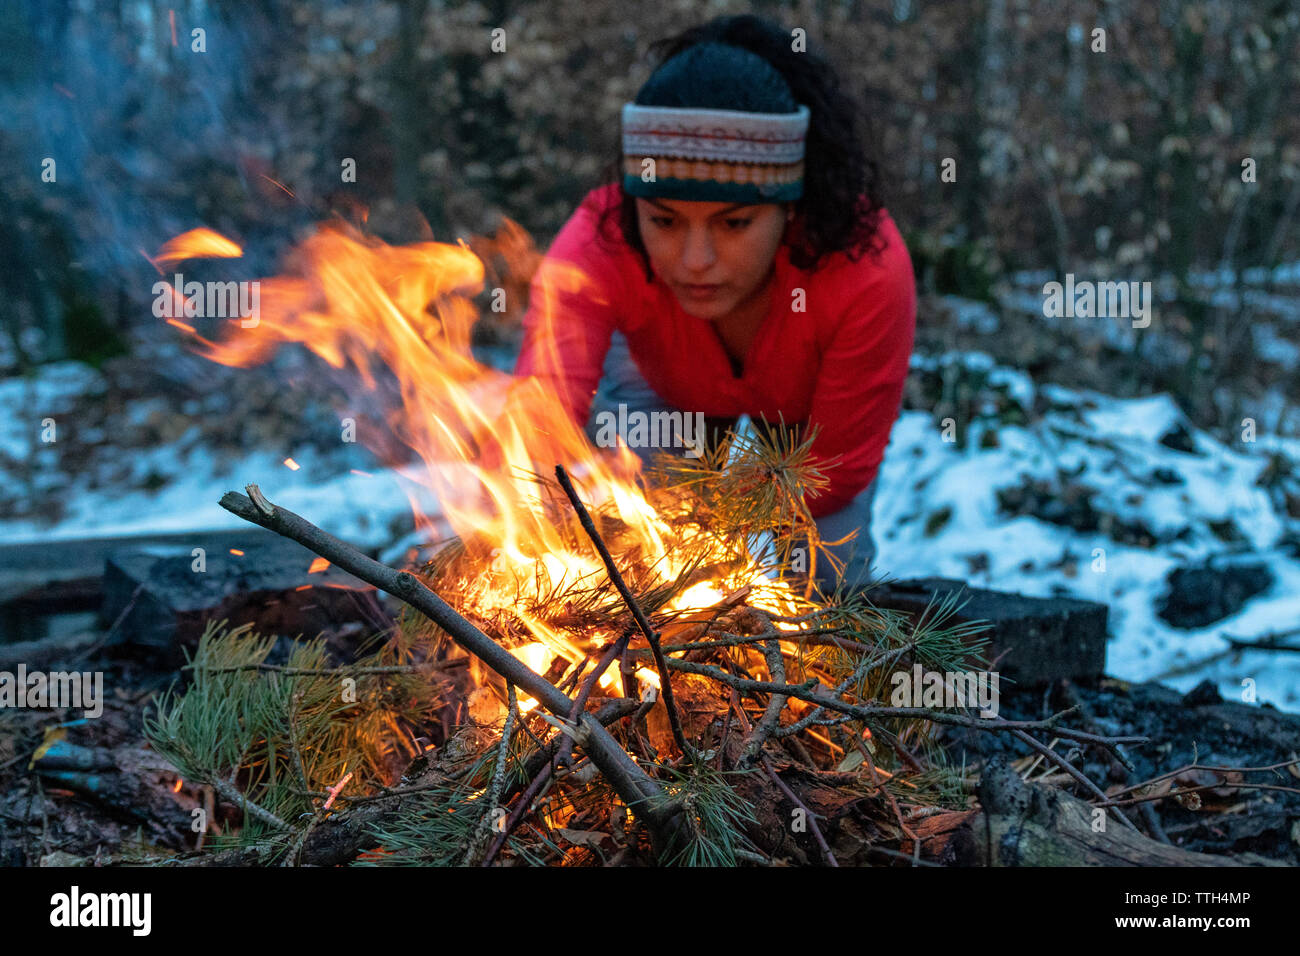 Woman Starting A Bonfire At A Fireplace In The Forest In Autumn